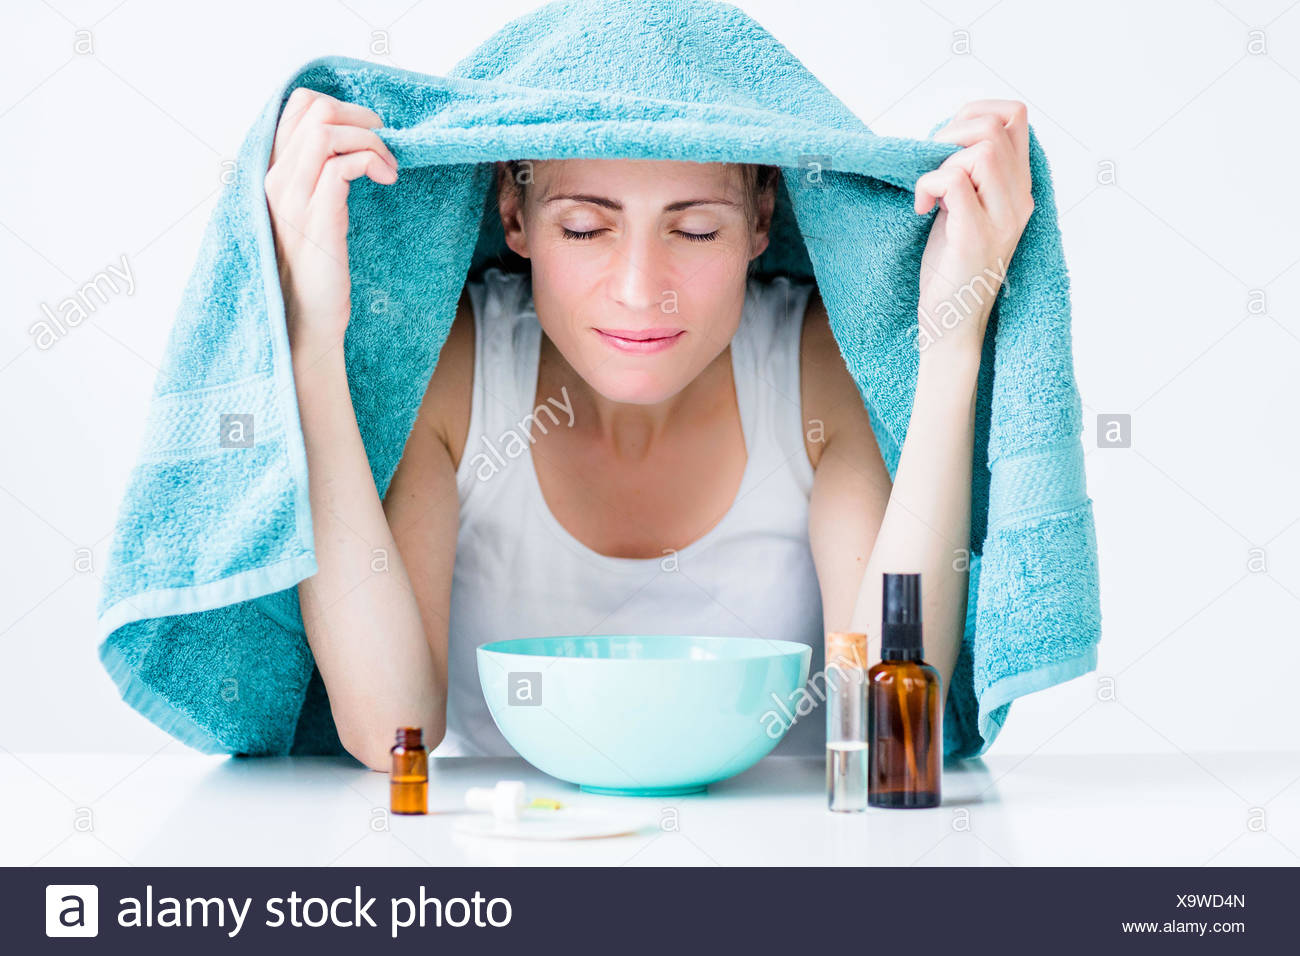 Woman treating a nasal congestion with an inhalation. - Stock Image